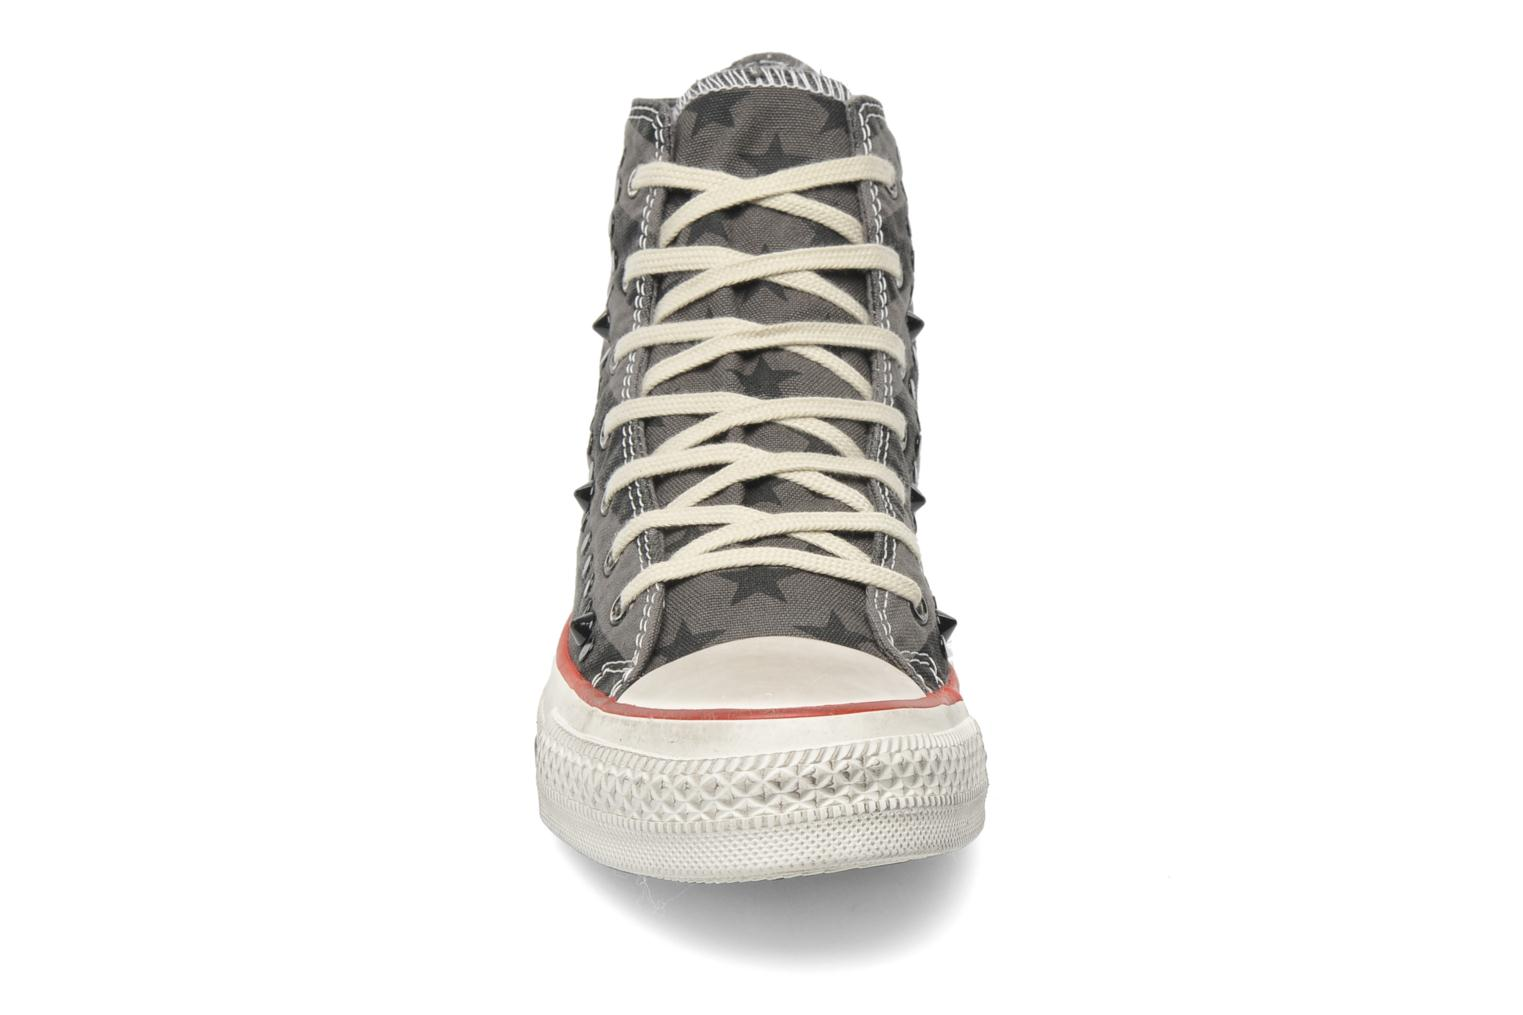 Baskets Converse Chuck Taylor All Star Well Worn Studs Canvas Hi W Gris vue portées chaussures